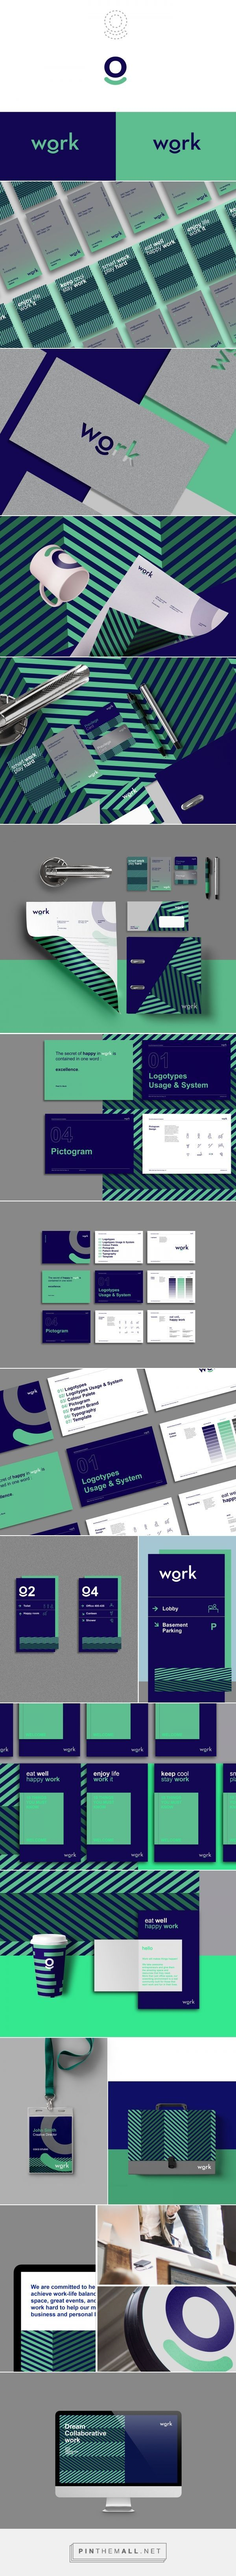 Work - Branding on Behance - created via https://pinthemall.net